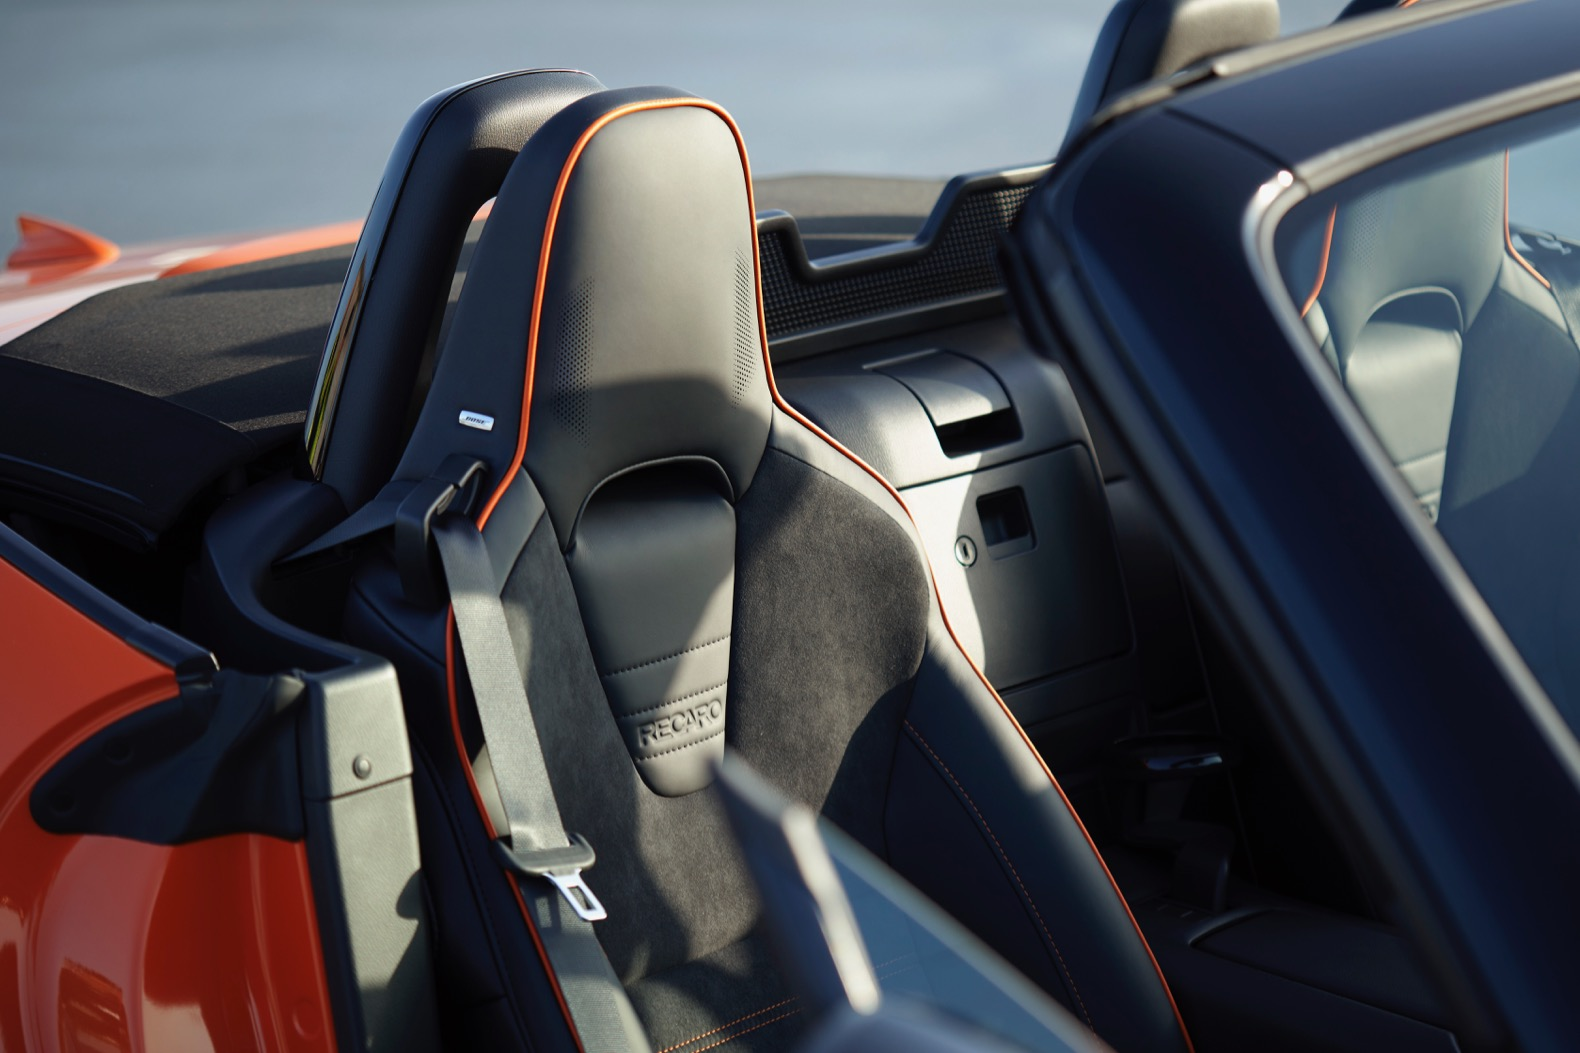 2019 mazda mx 5 miata 30th anniversary edition sells out in 4 hours the torque report. Black Bedroom Furniture Sets. Home Design Ideas